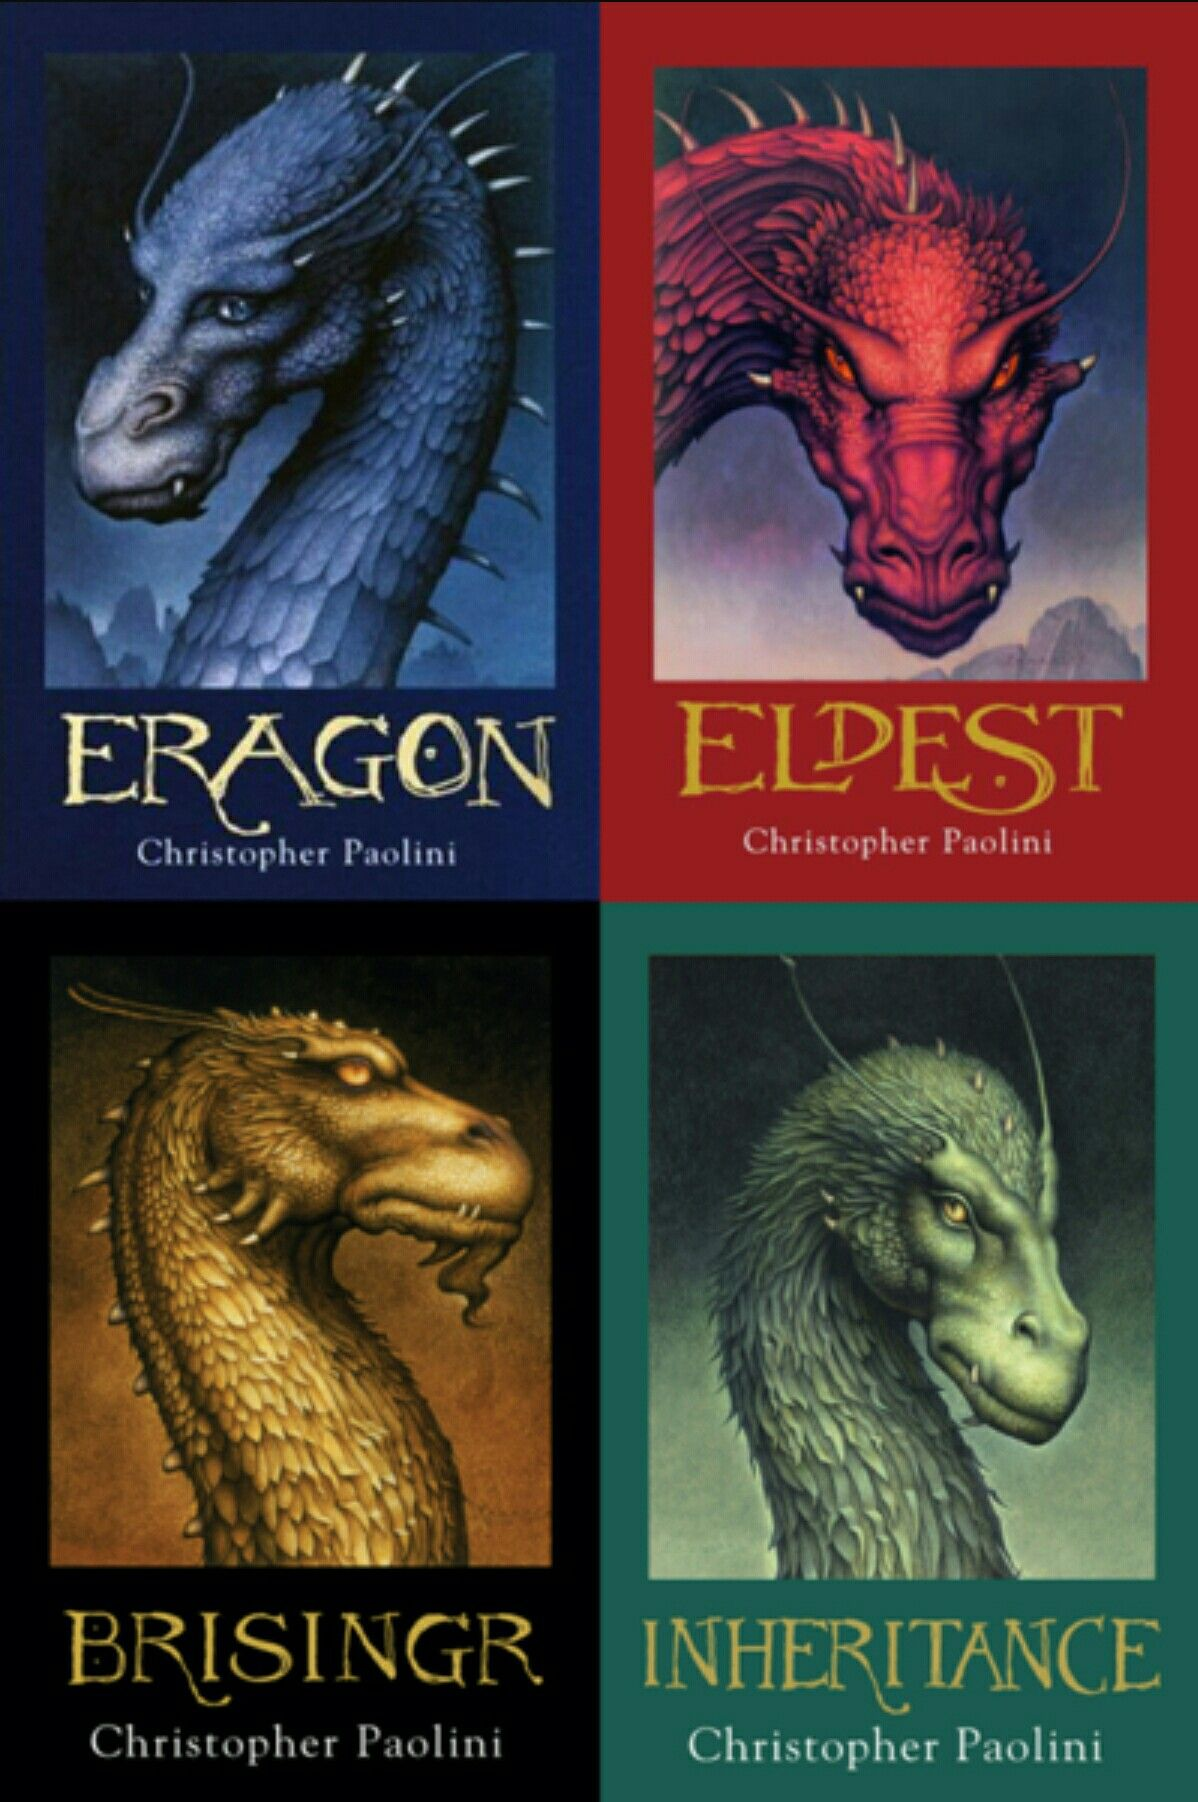 Christopher Paolini and his books